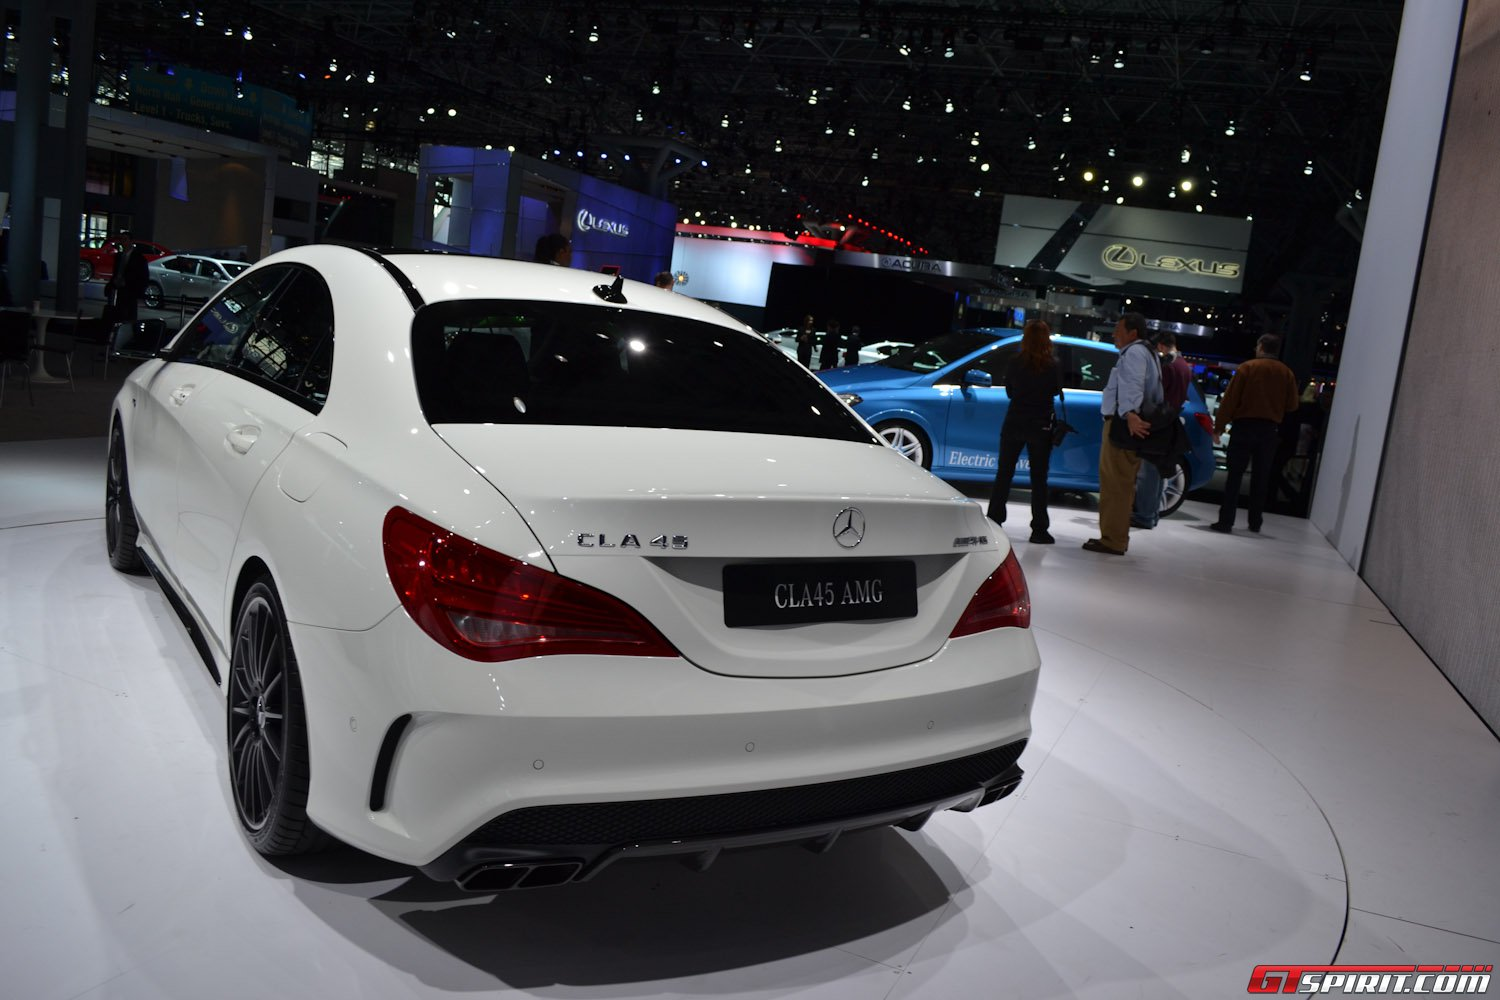 All Types 2013 mercedes cla : New York 2013: Mercedes-Benz CLA 45 AMG - GTspirit